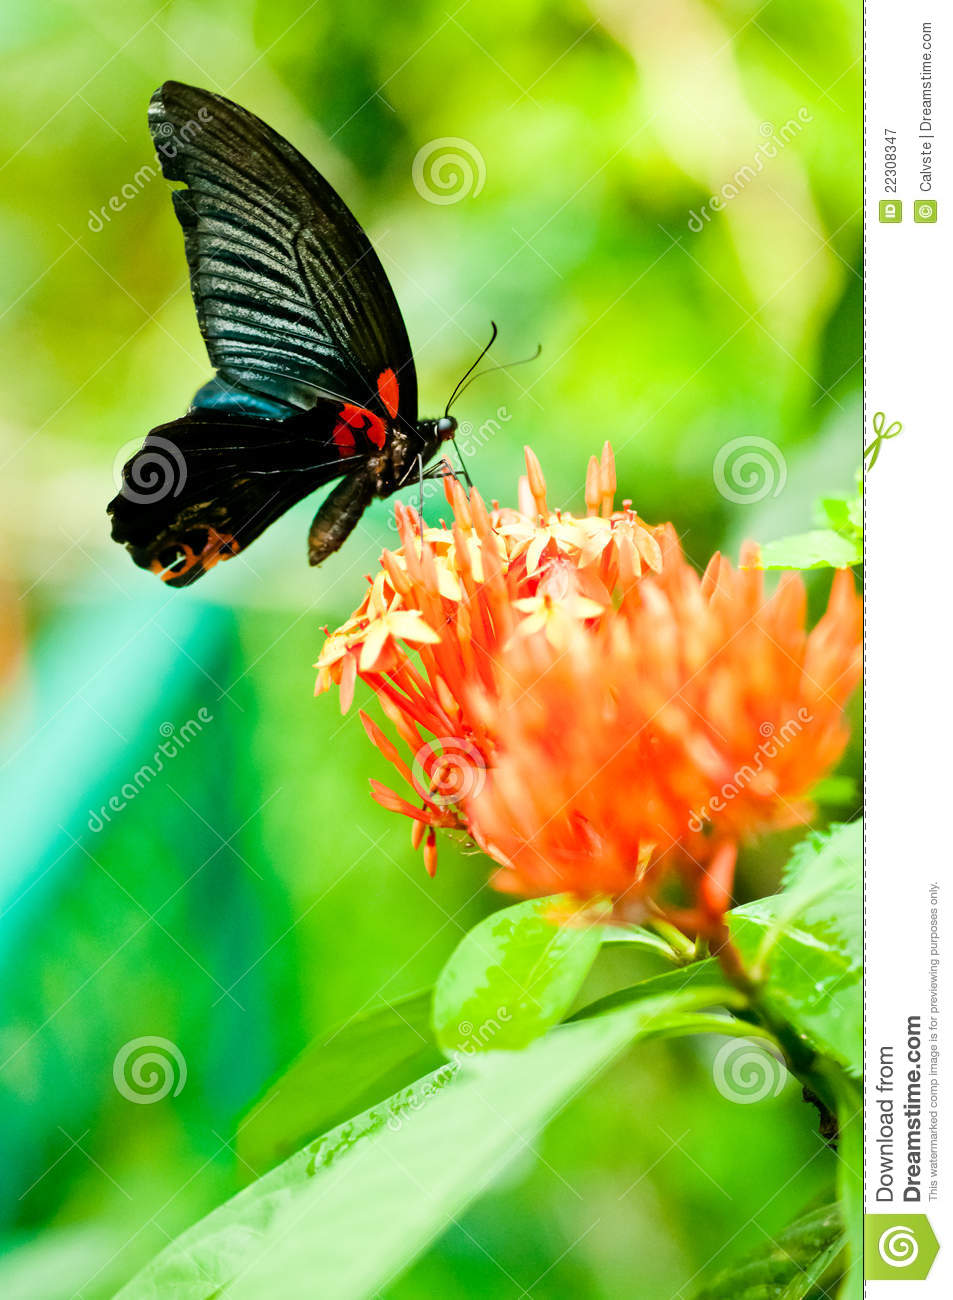 The Great Mormon butterfly on tropical flowers